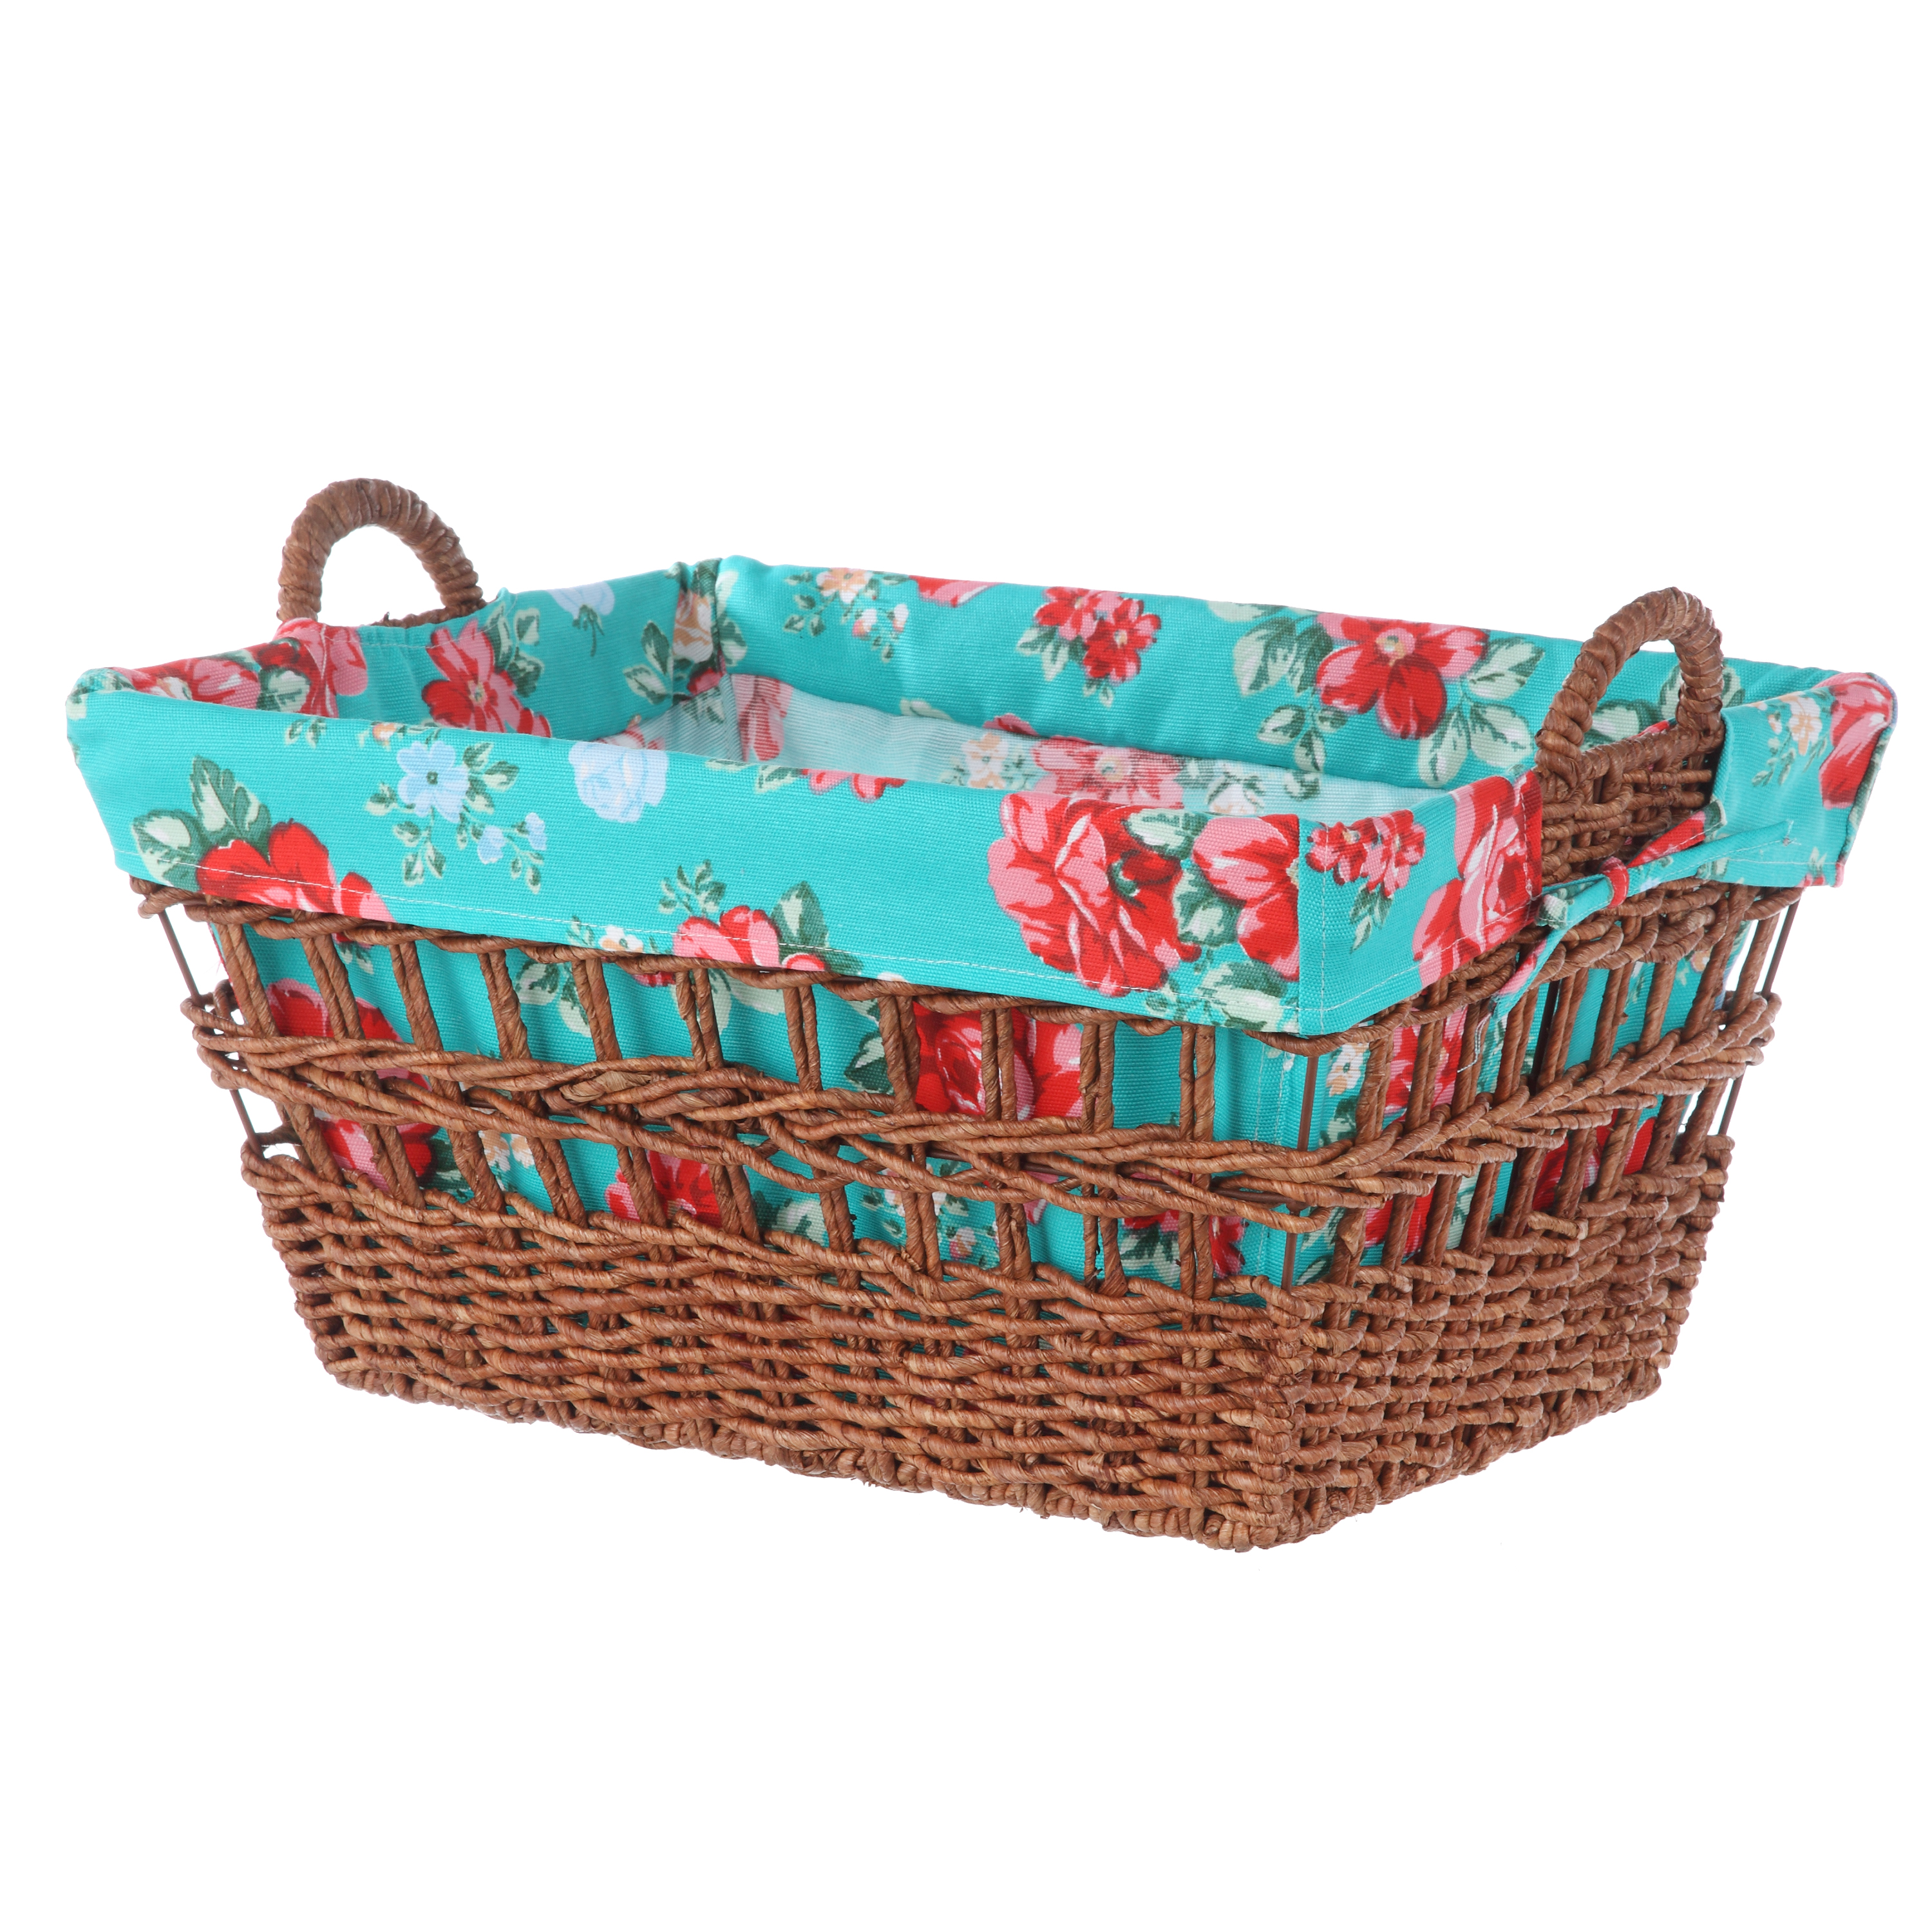 Pioneer Woman Rectangle Maize Laundry Basket - Teal Floral